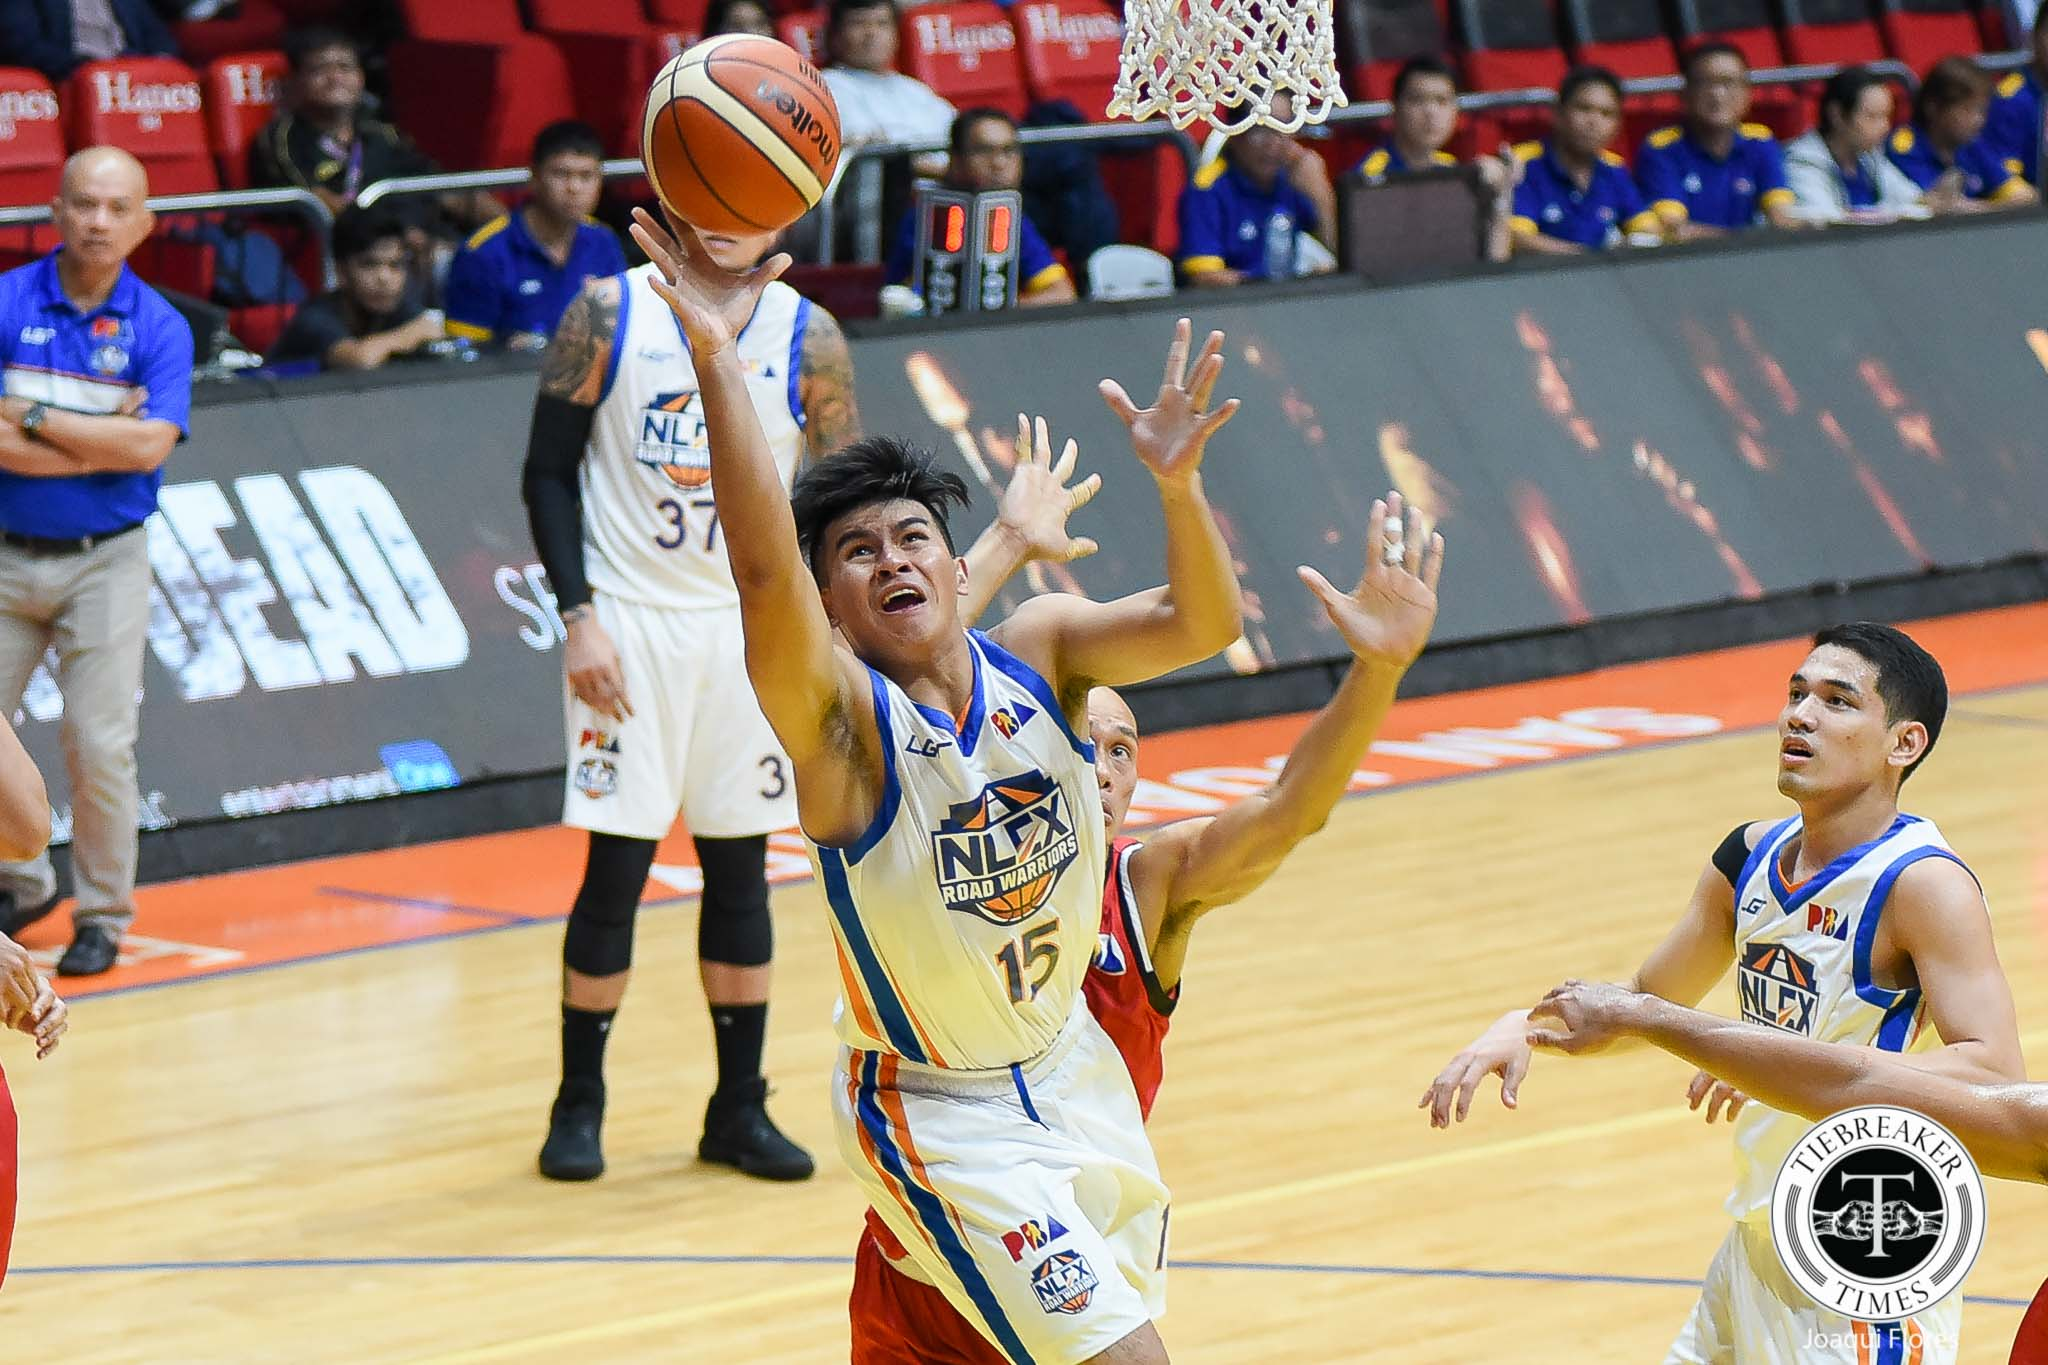 Philippine Sports News - Tiebreaker Times Kiefer Ravena draws high praise from Yeng Guiao: 'He's like Paul Lee and Willie Miller' Basketball News PBA  Yeng Guiao Willie Miller PBA Season 43 Paul Lee NLEX Road Warriors Kiefer Ravena 2017-18 PBA Philippine Cup